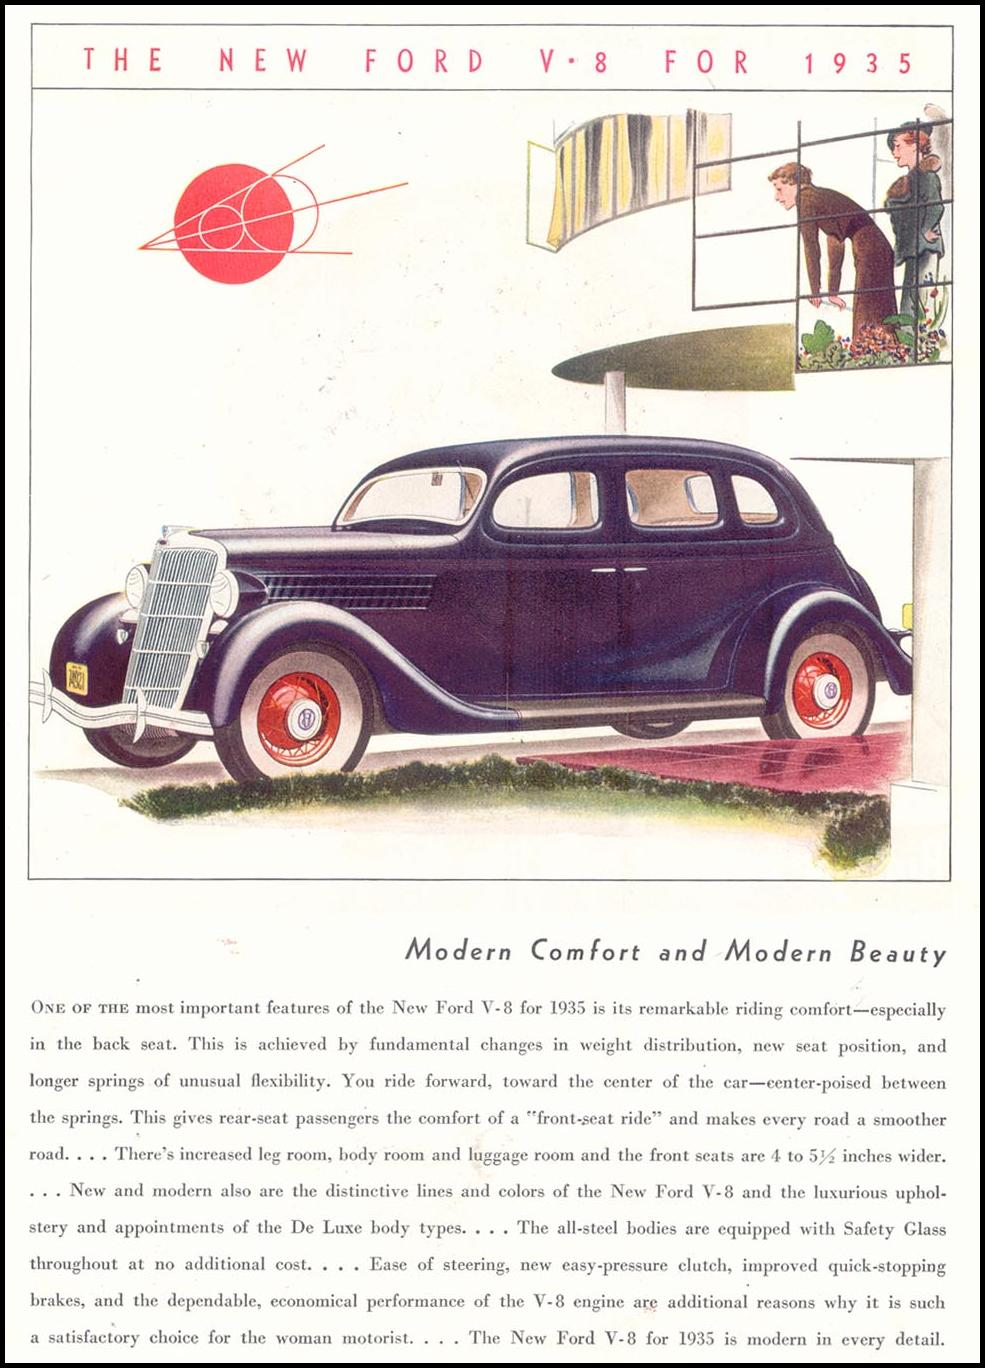 FORD AUTOMOBILES